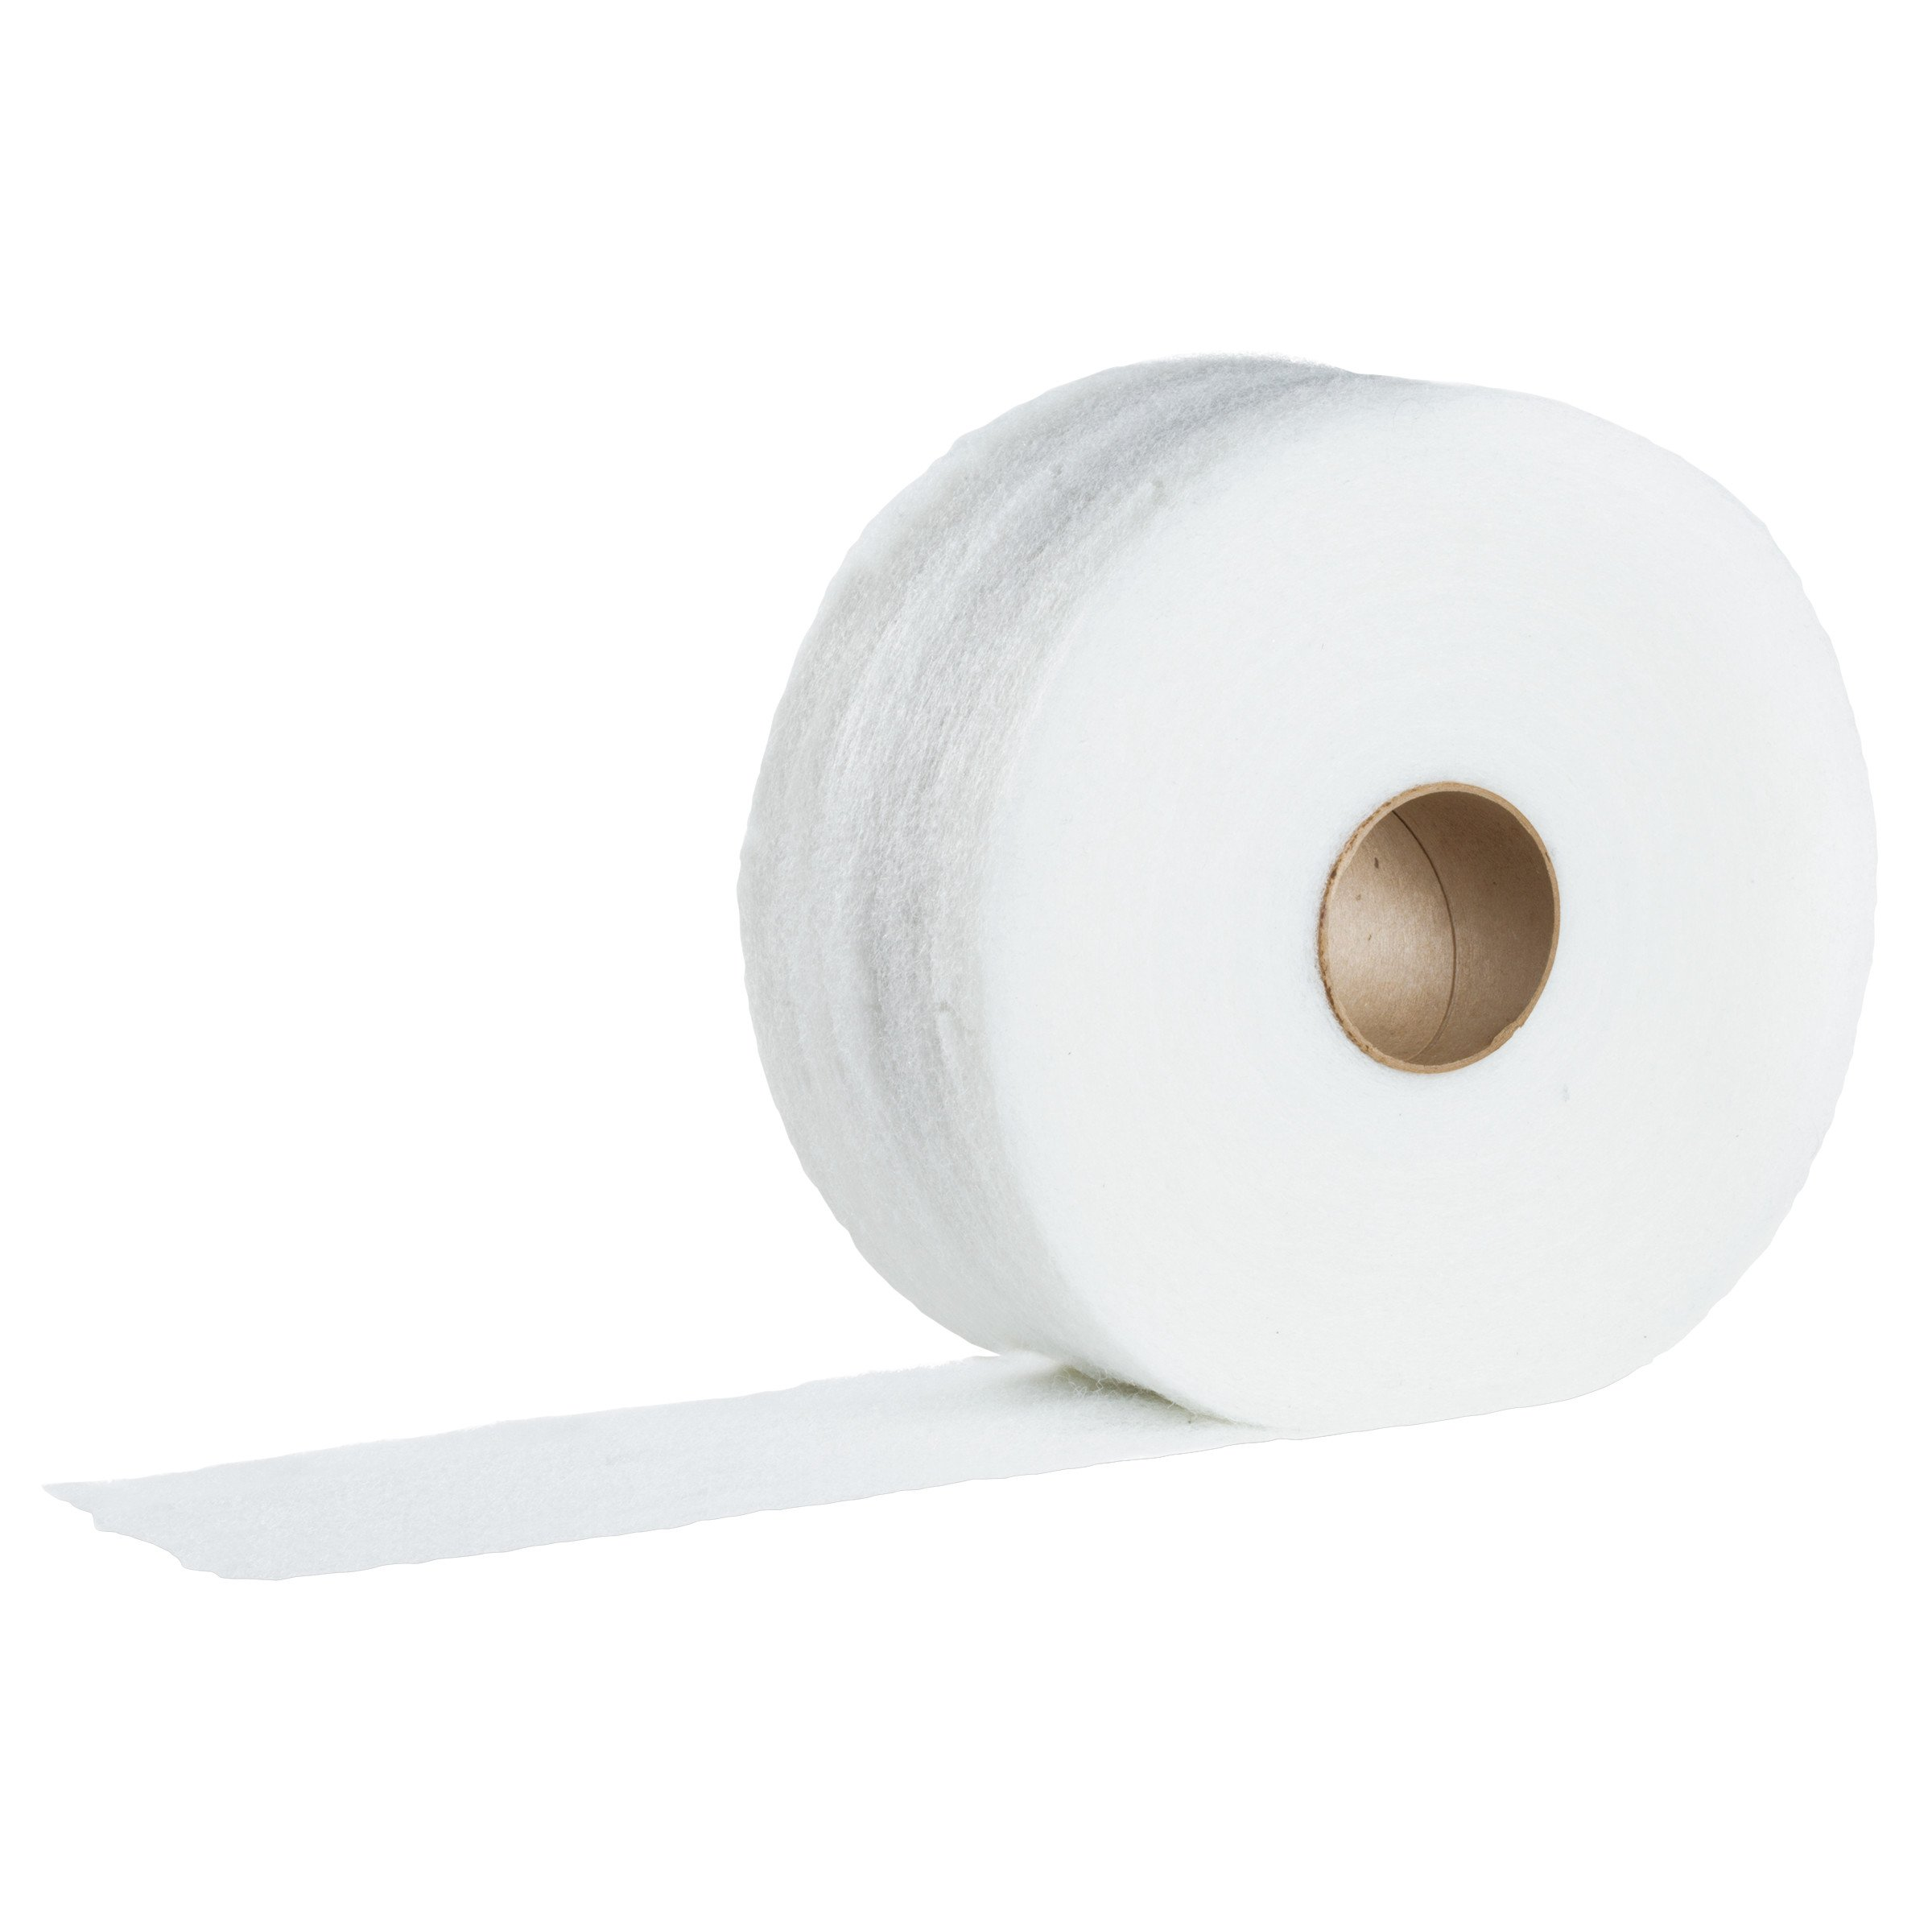 3M  Easy Trap Duster - sweep & dust sheets, 5'' x 6'' sheets, 250 sheets/roll, 2 rolls/case by 3M (Image #1)